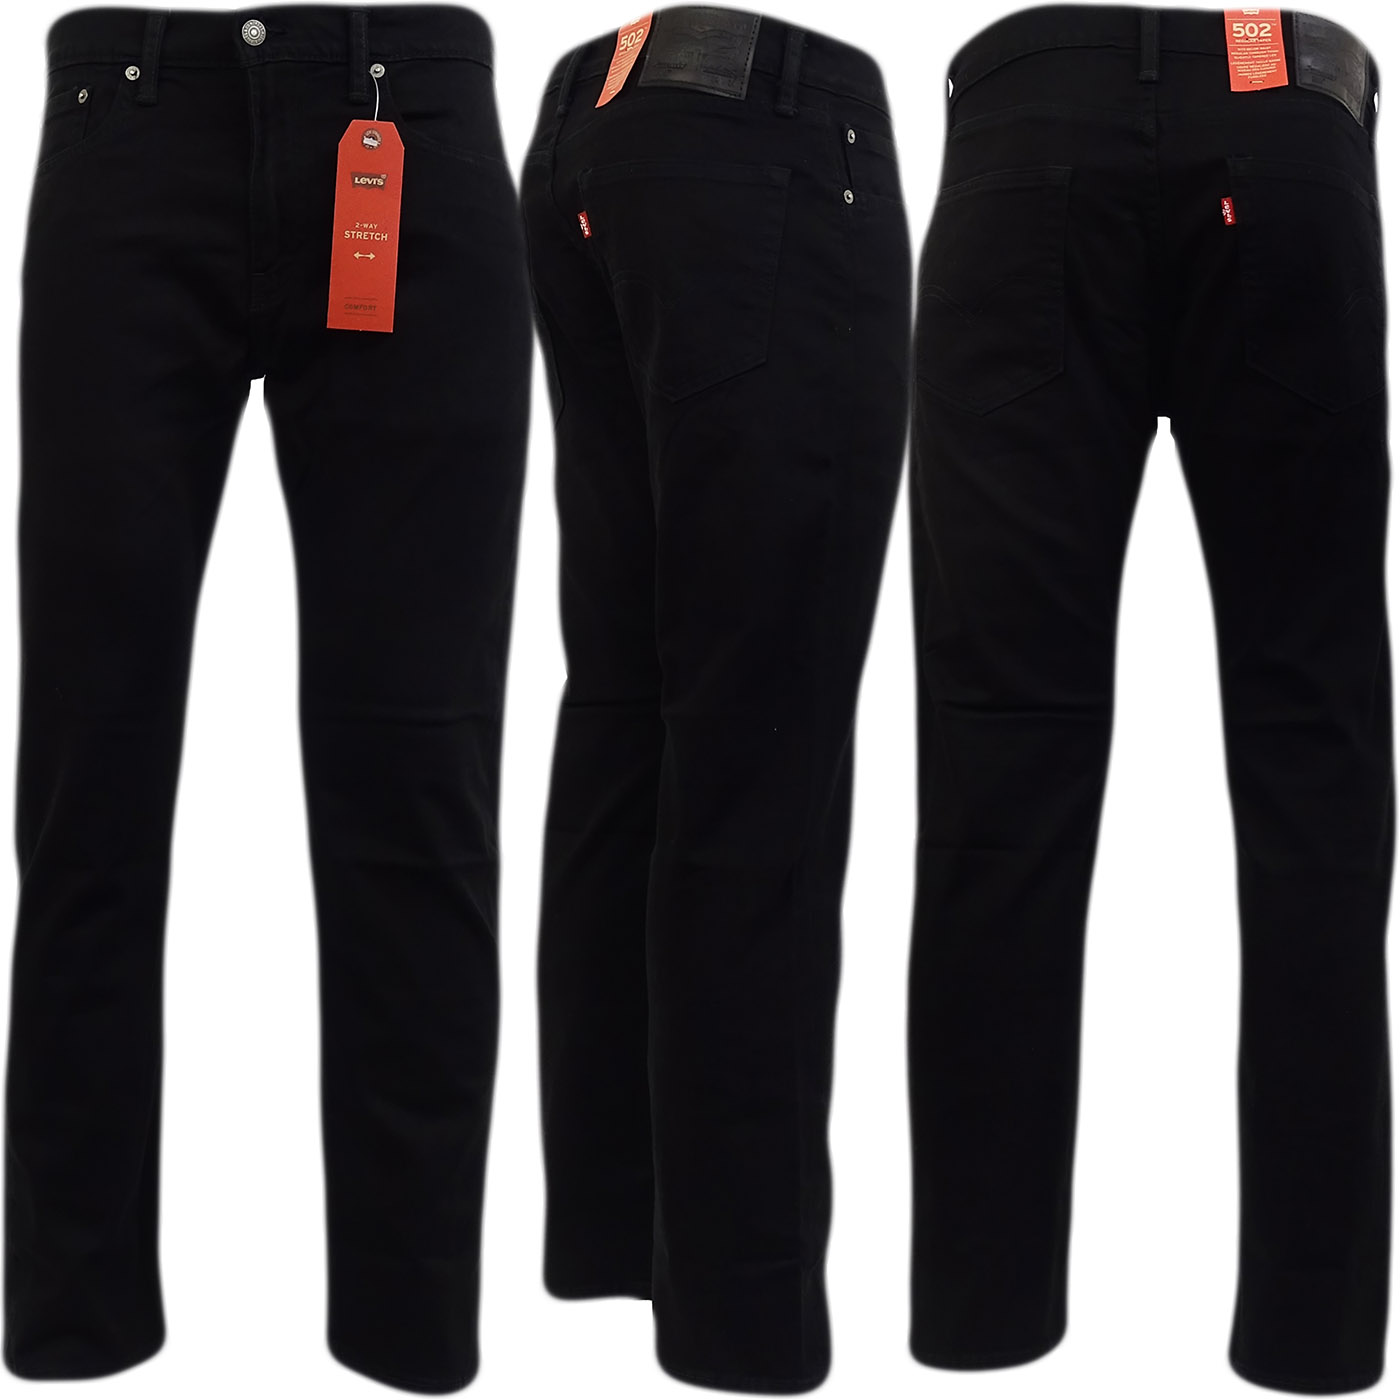 Levi-Strauss-502-Tapered-Leg-Jean-Black-Nightshine-00-31